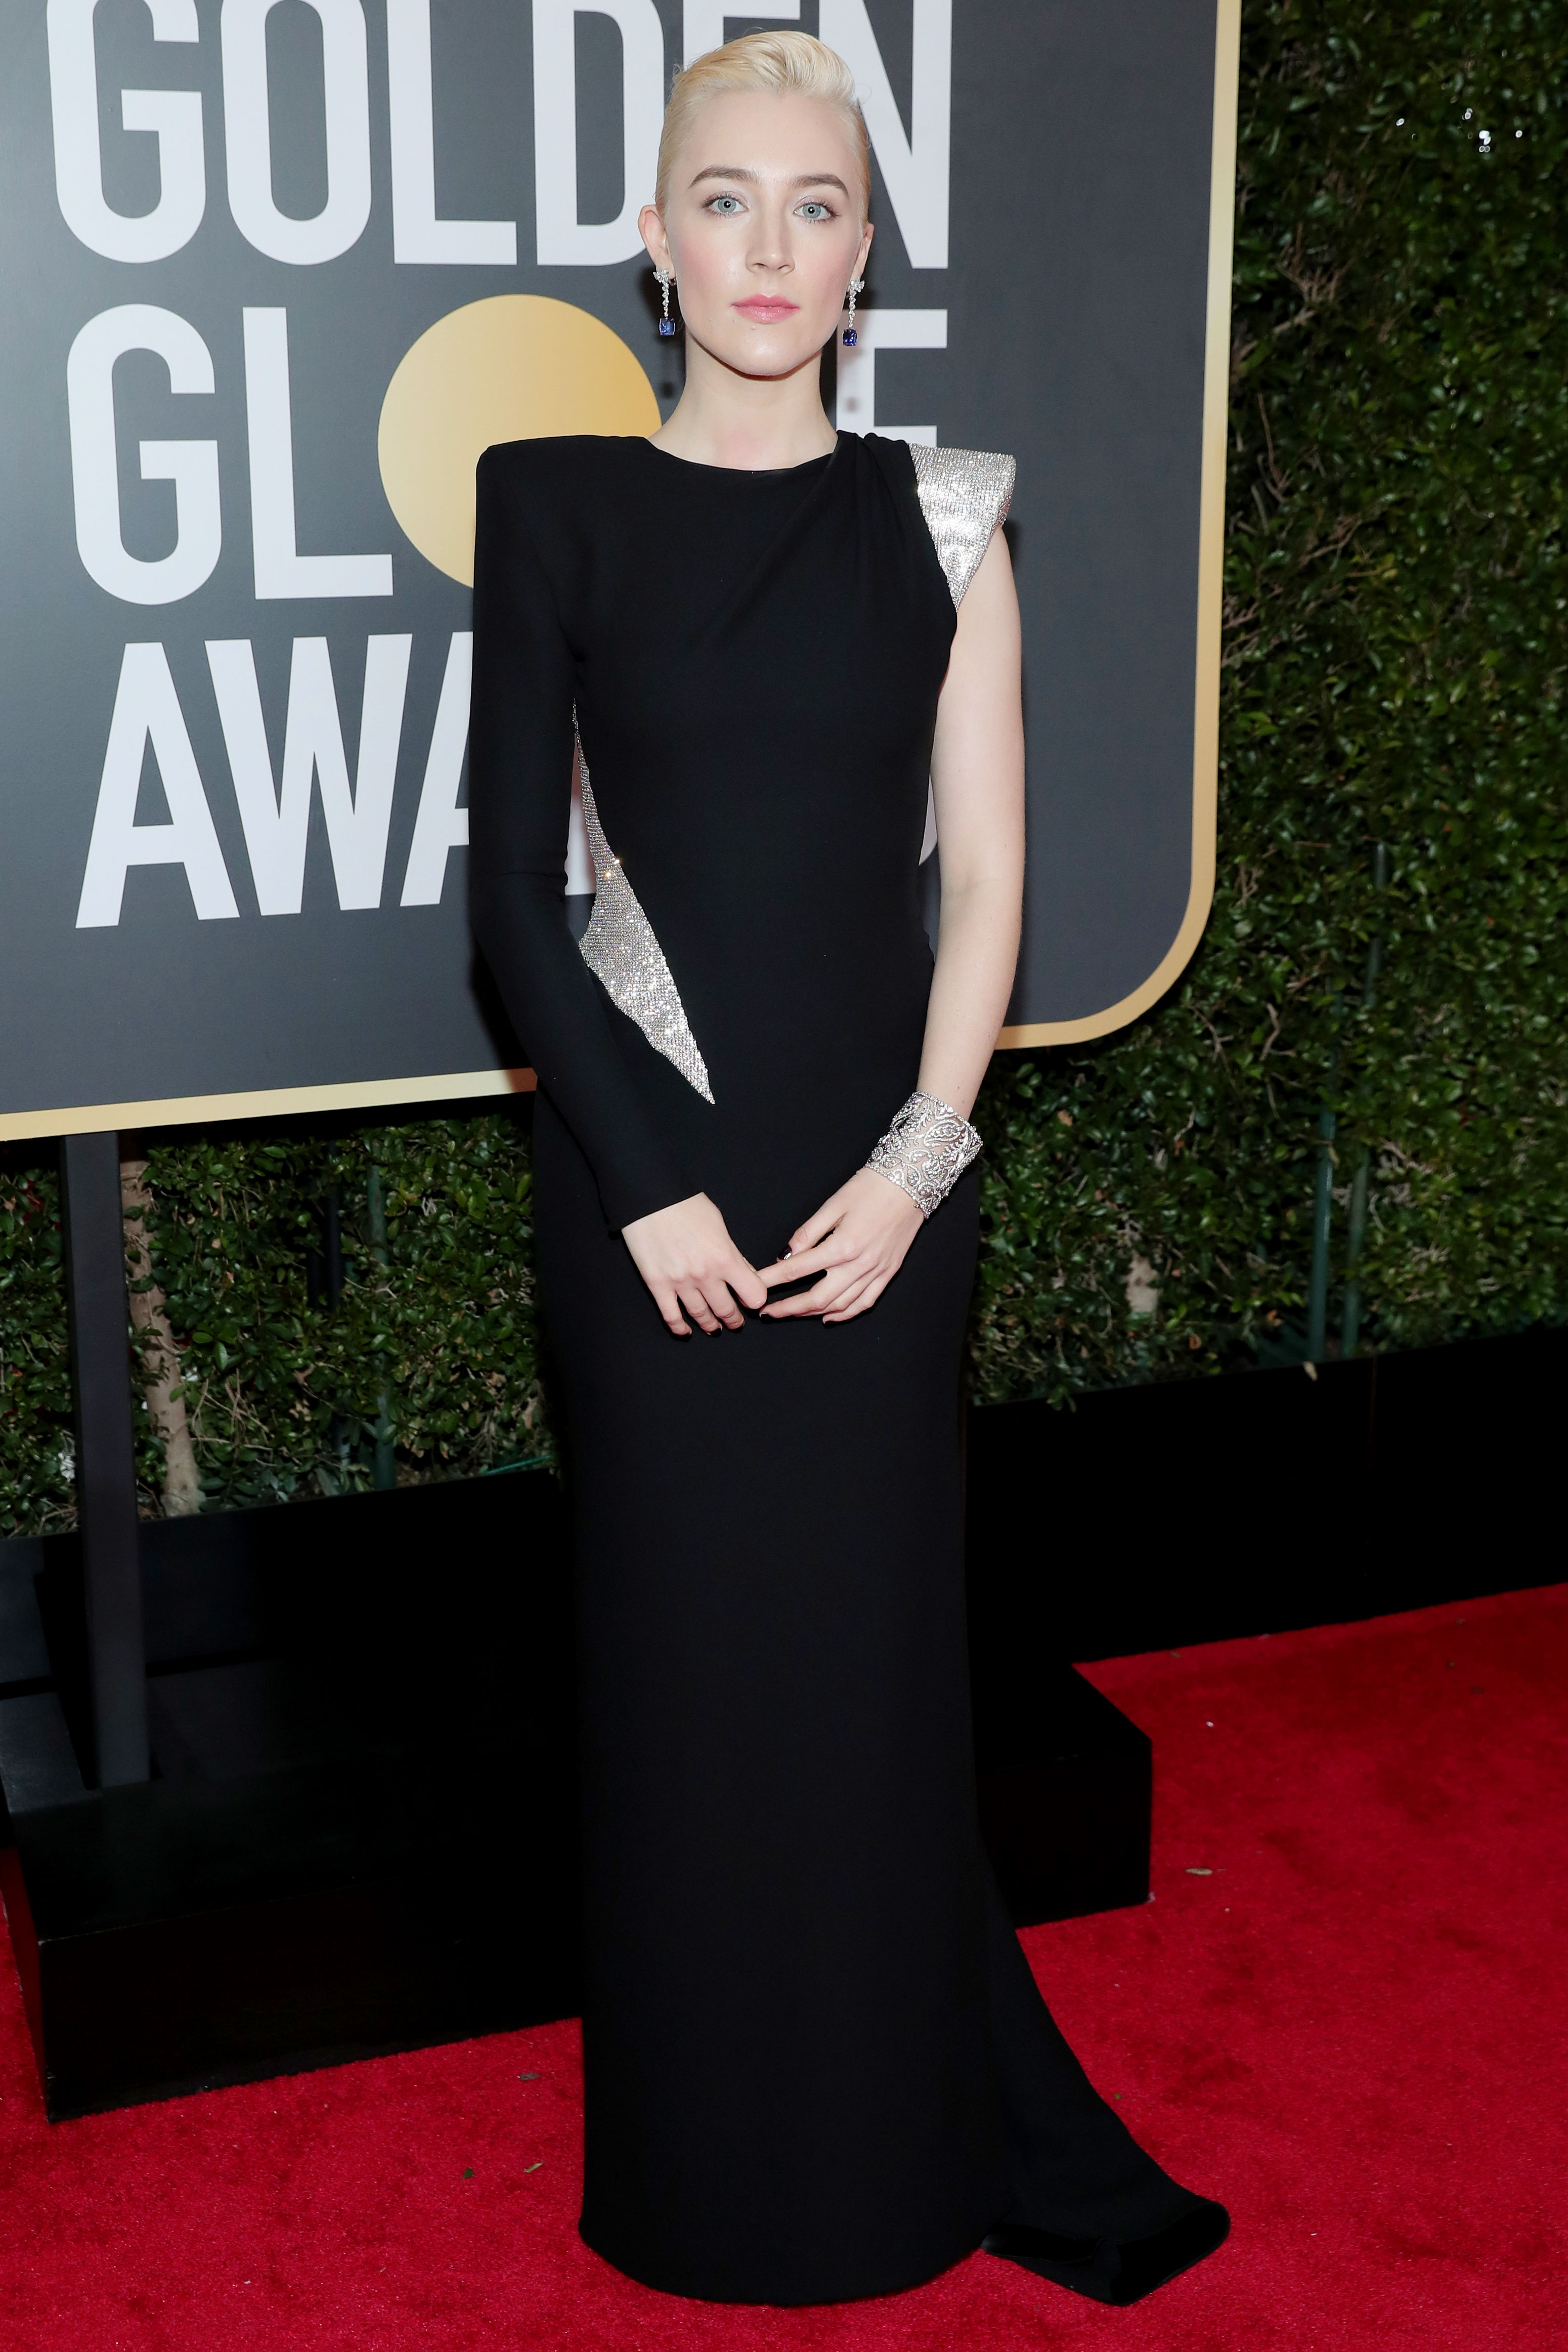 Saoirse Ronan's Black Golden Globes Gown Had the Boldest Shoulders of the Night